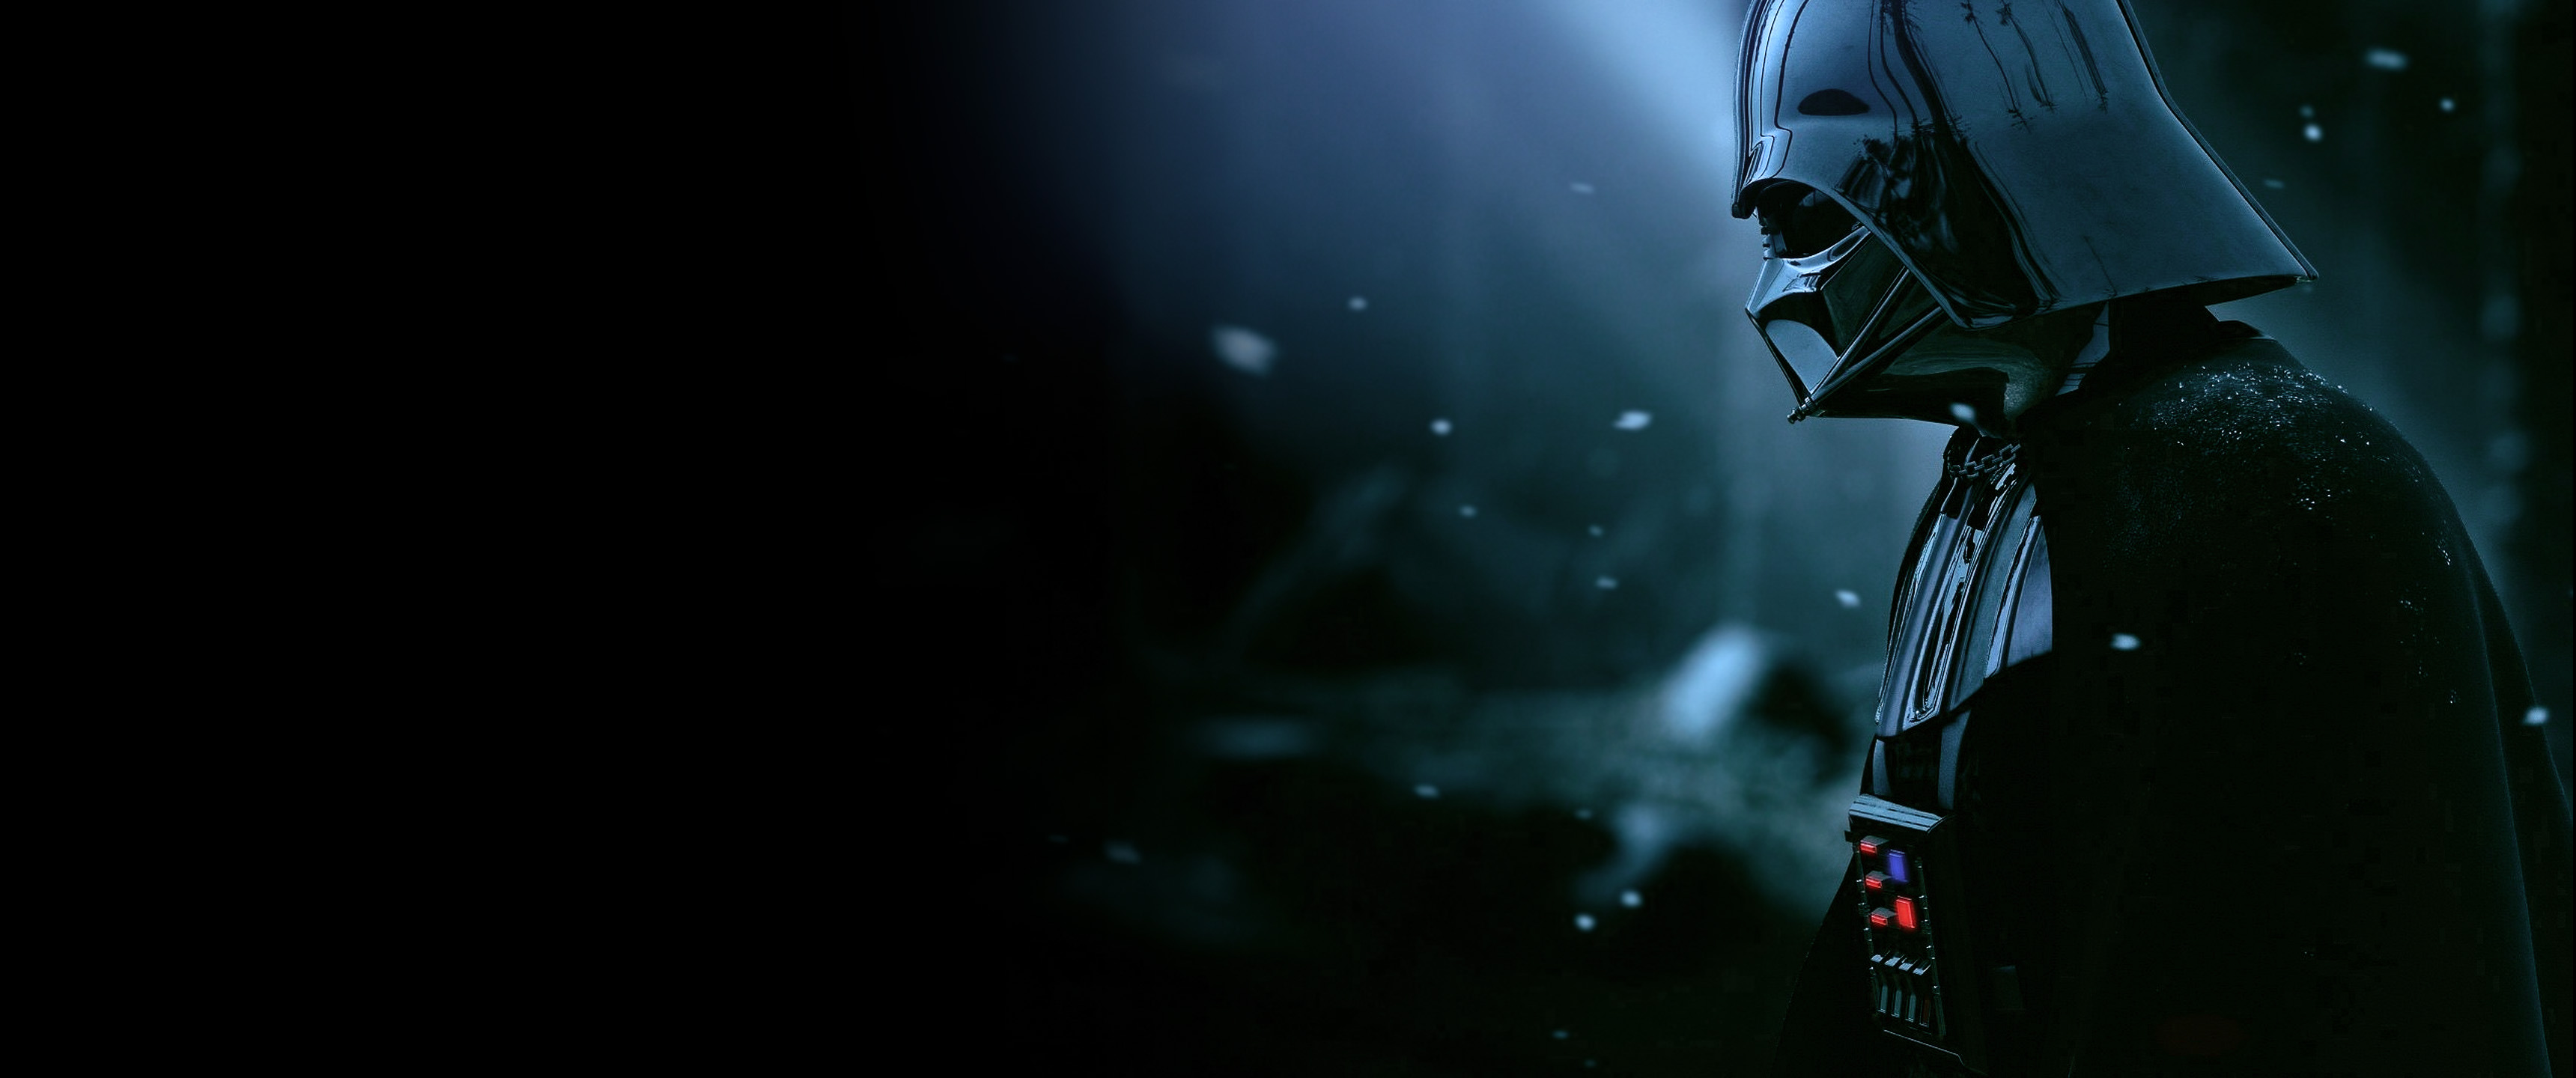 Star Wars ultra widescreen backgrounds   Album on Imgur 3440x1440